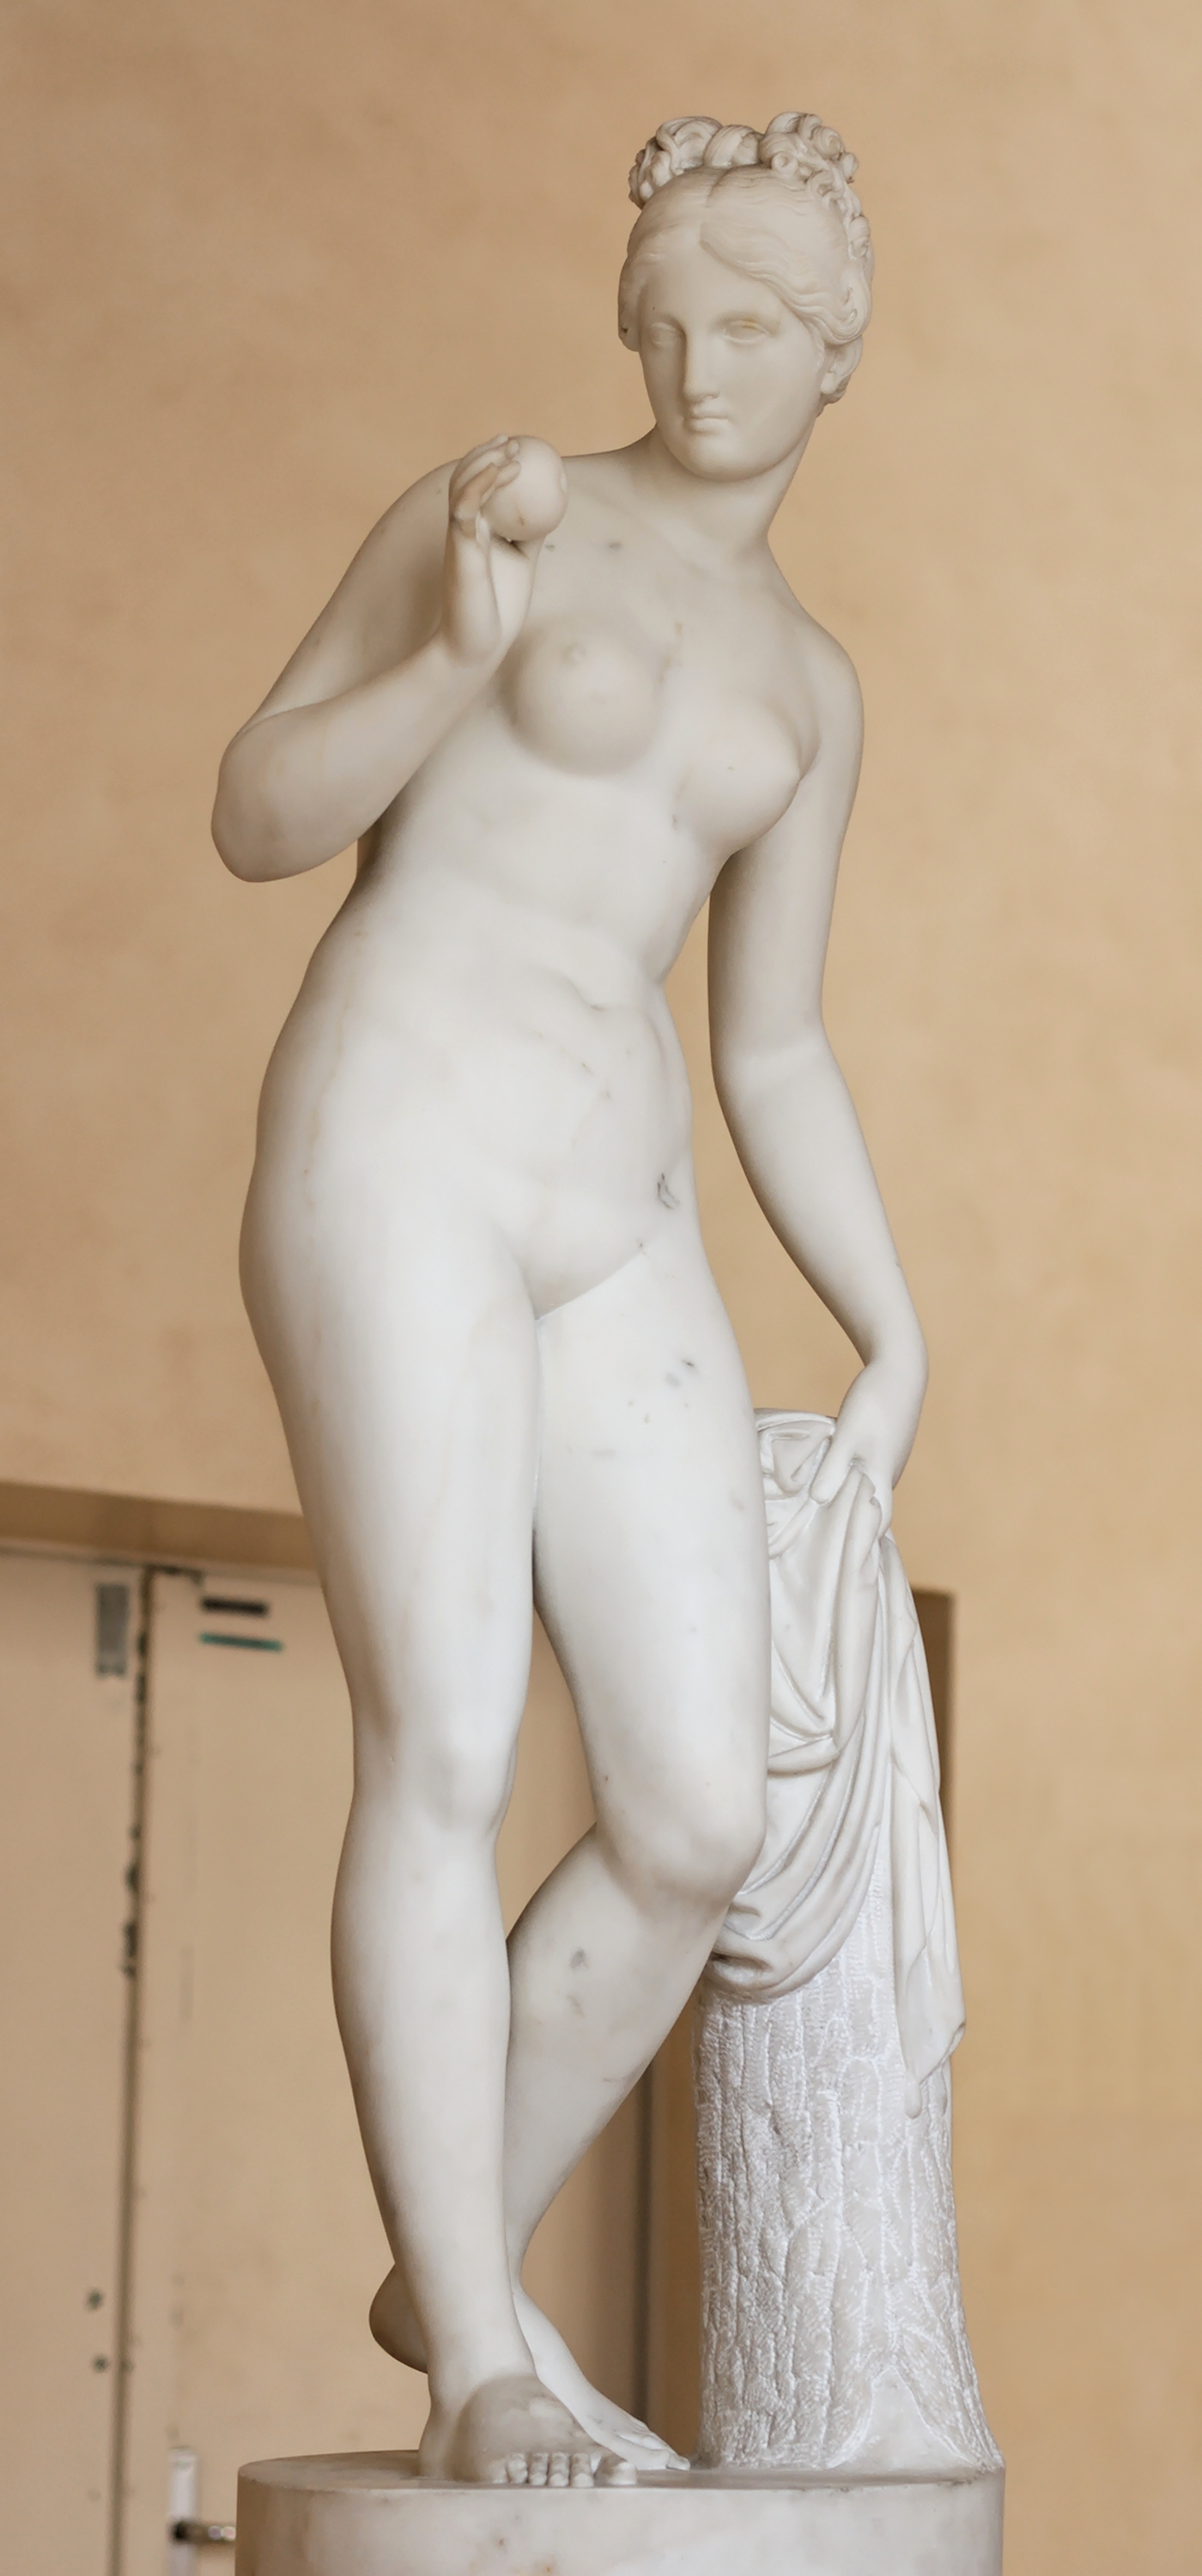 http://upload.wikimedia.org/wikipedia/commons/6/61/Venus_apple_Thorvaldsen_RF_3334.jpg